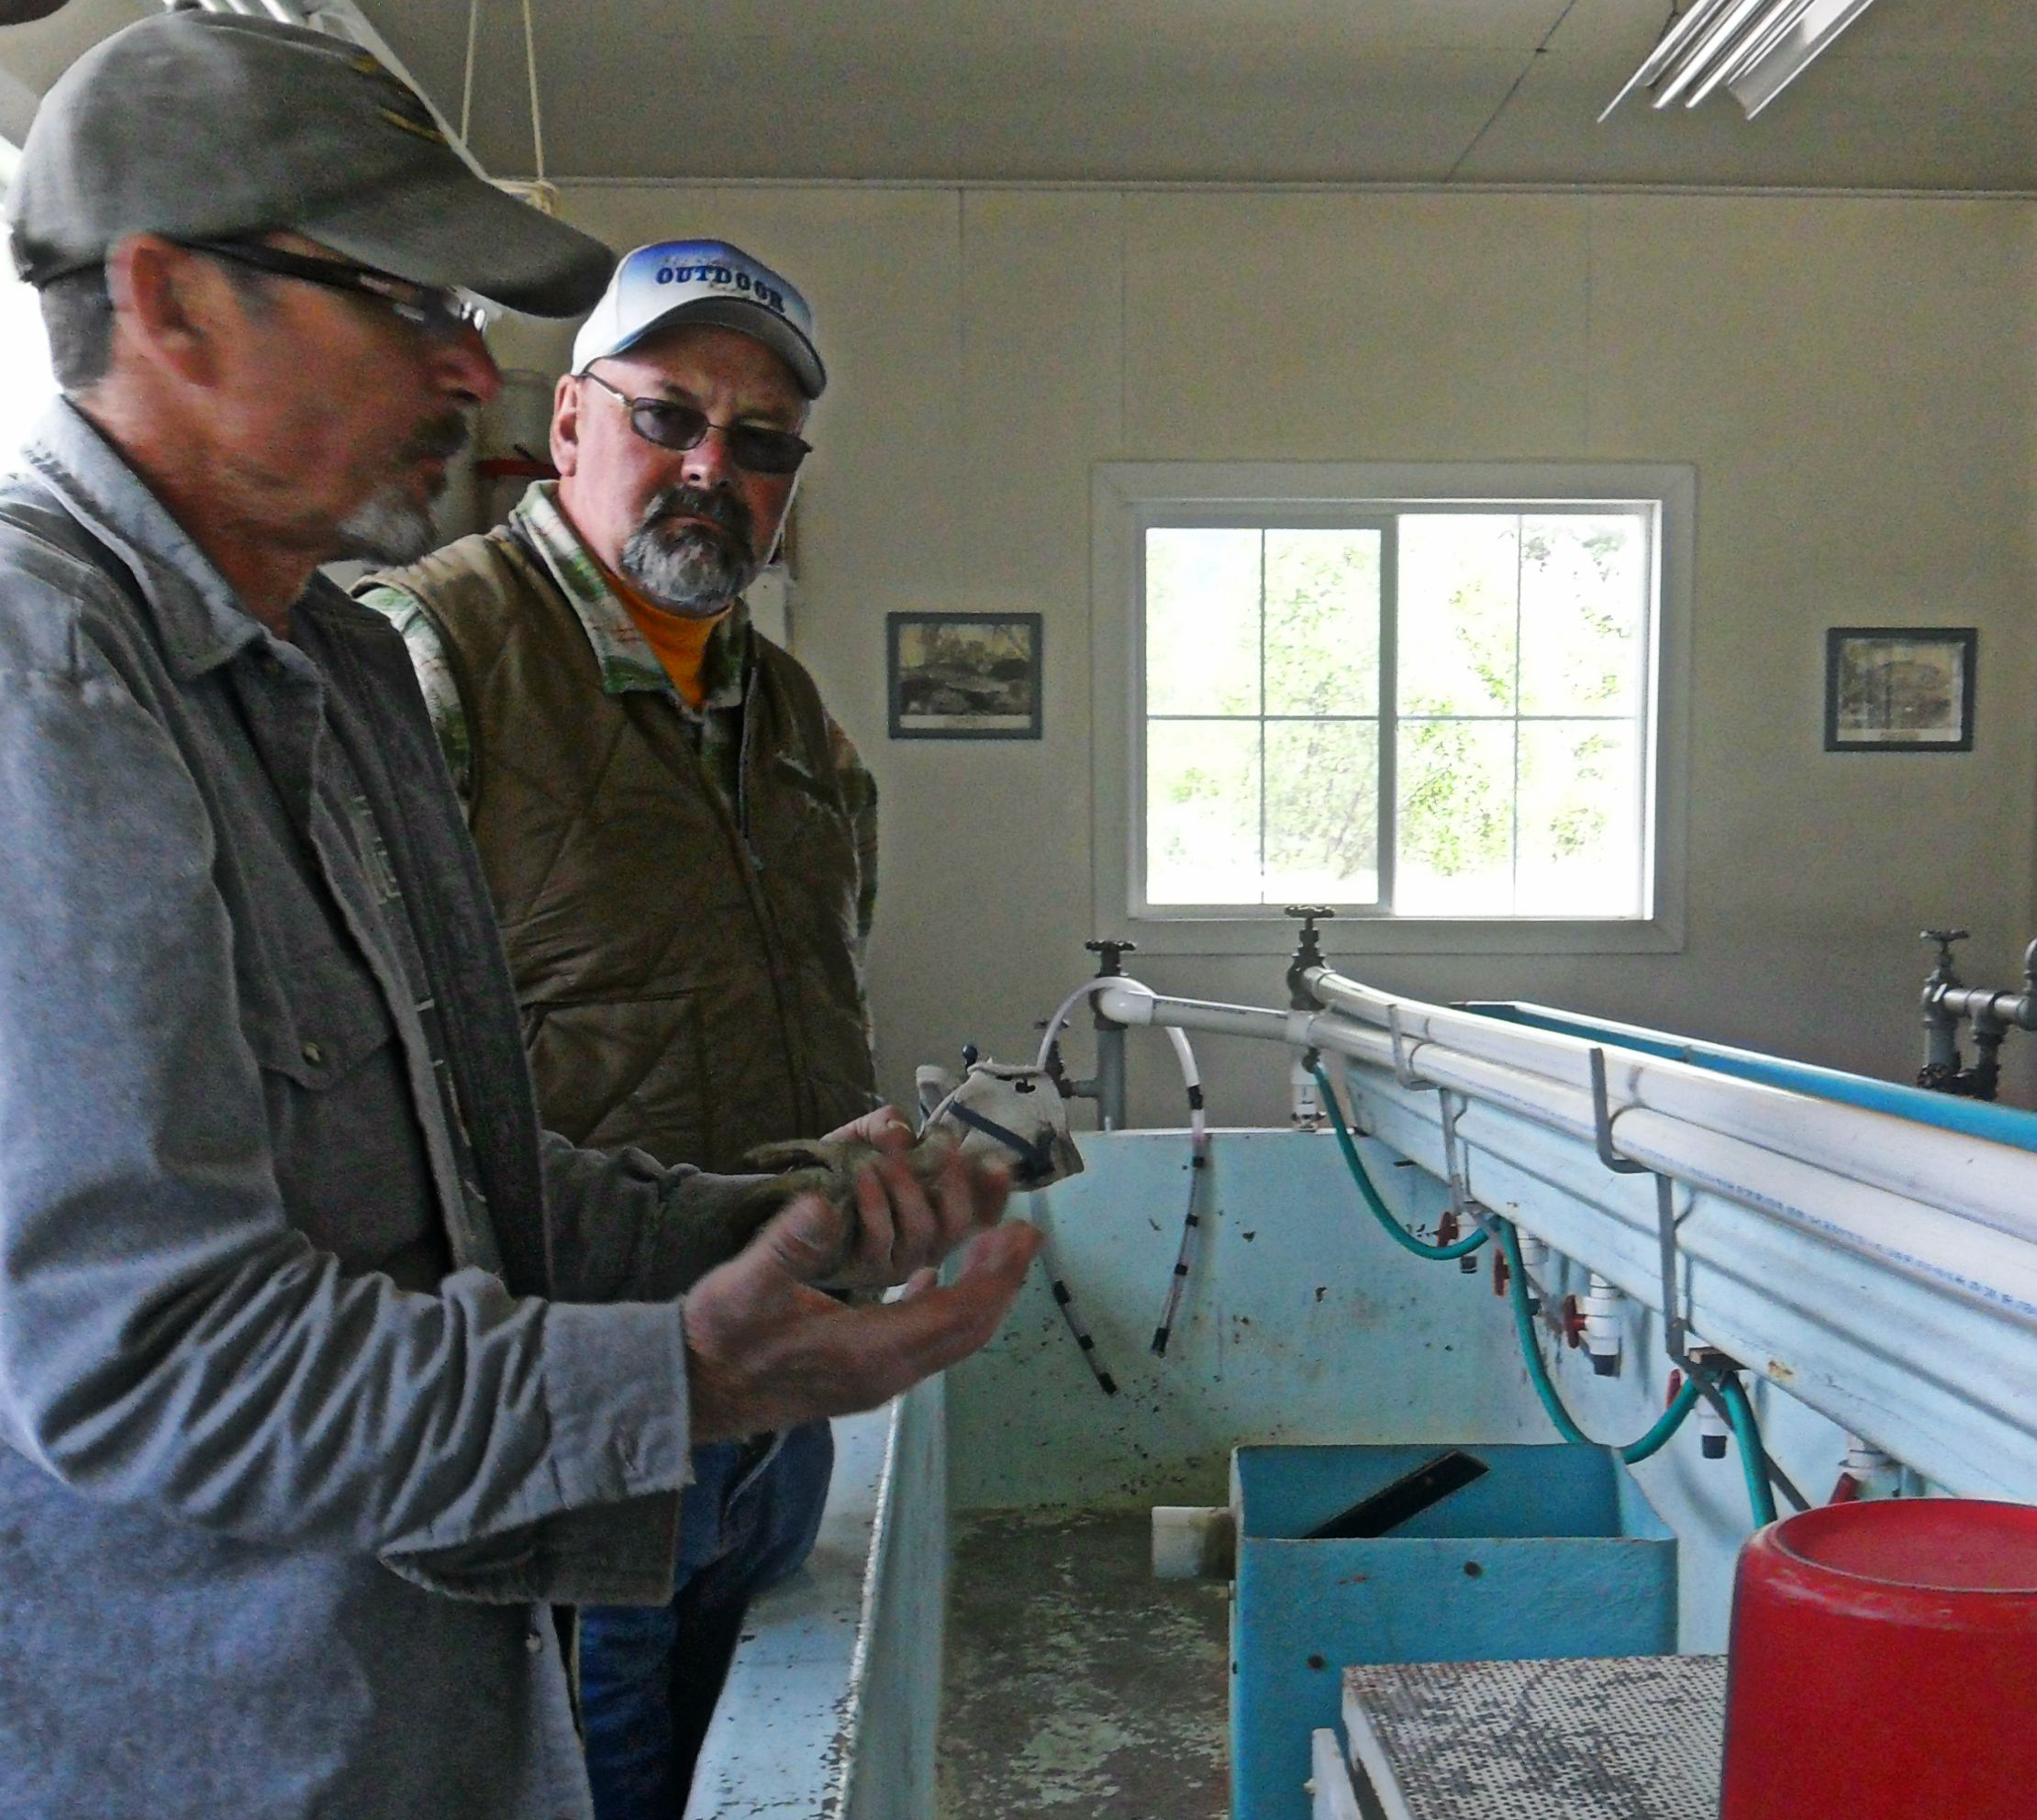 Ron Snyder, FWP Fish Culturist, was explaining what they do with the fish at the hatchery)